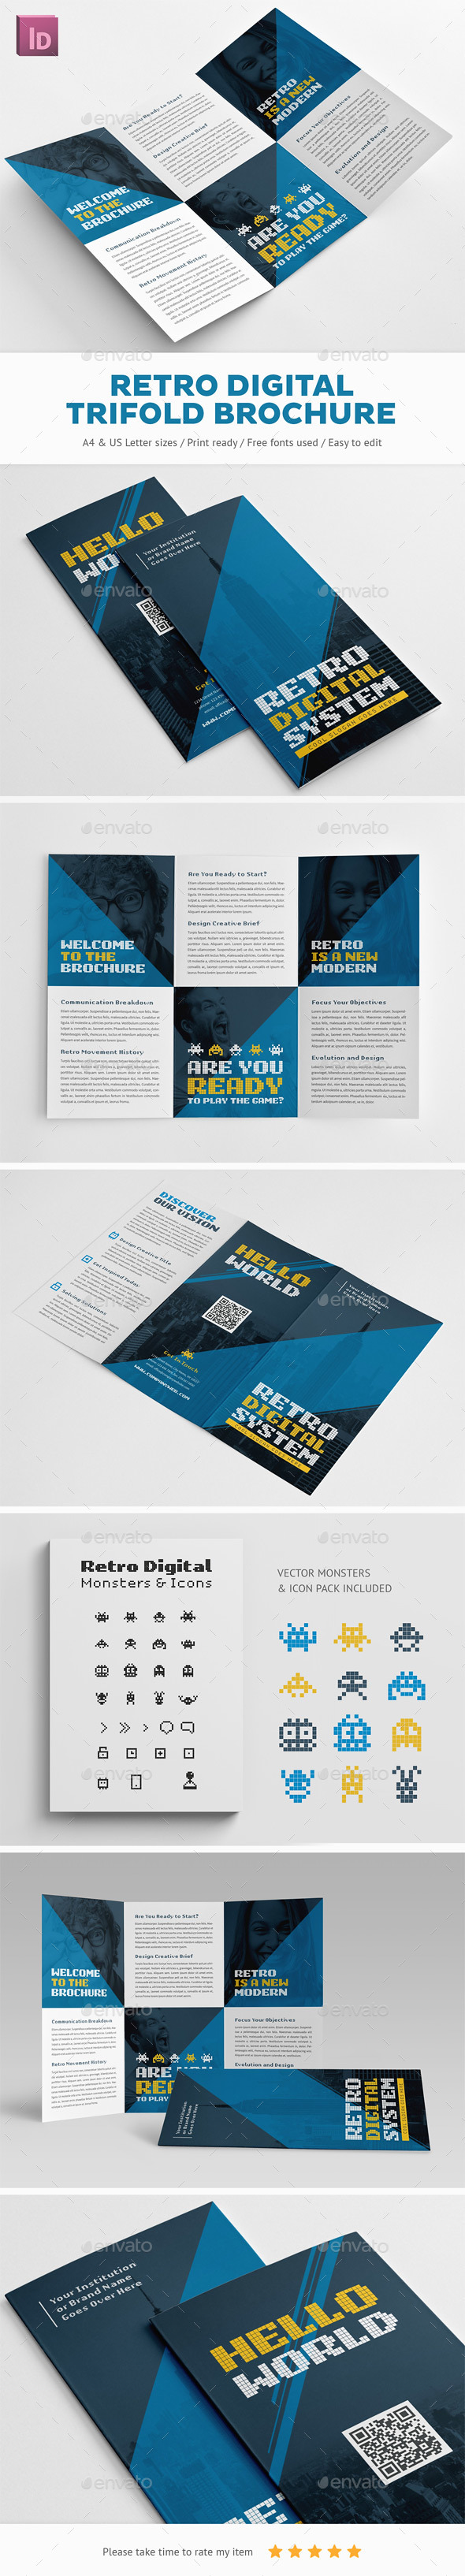 Retro Digital Trifold Brochure - Brochures Print Templates